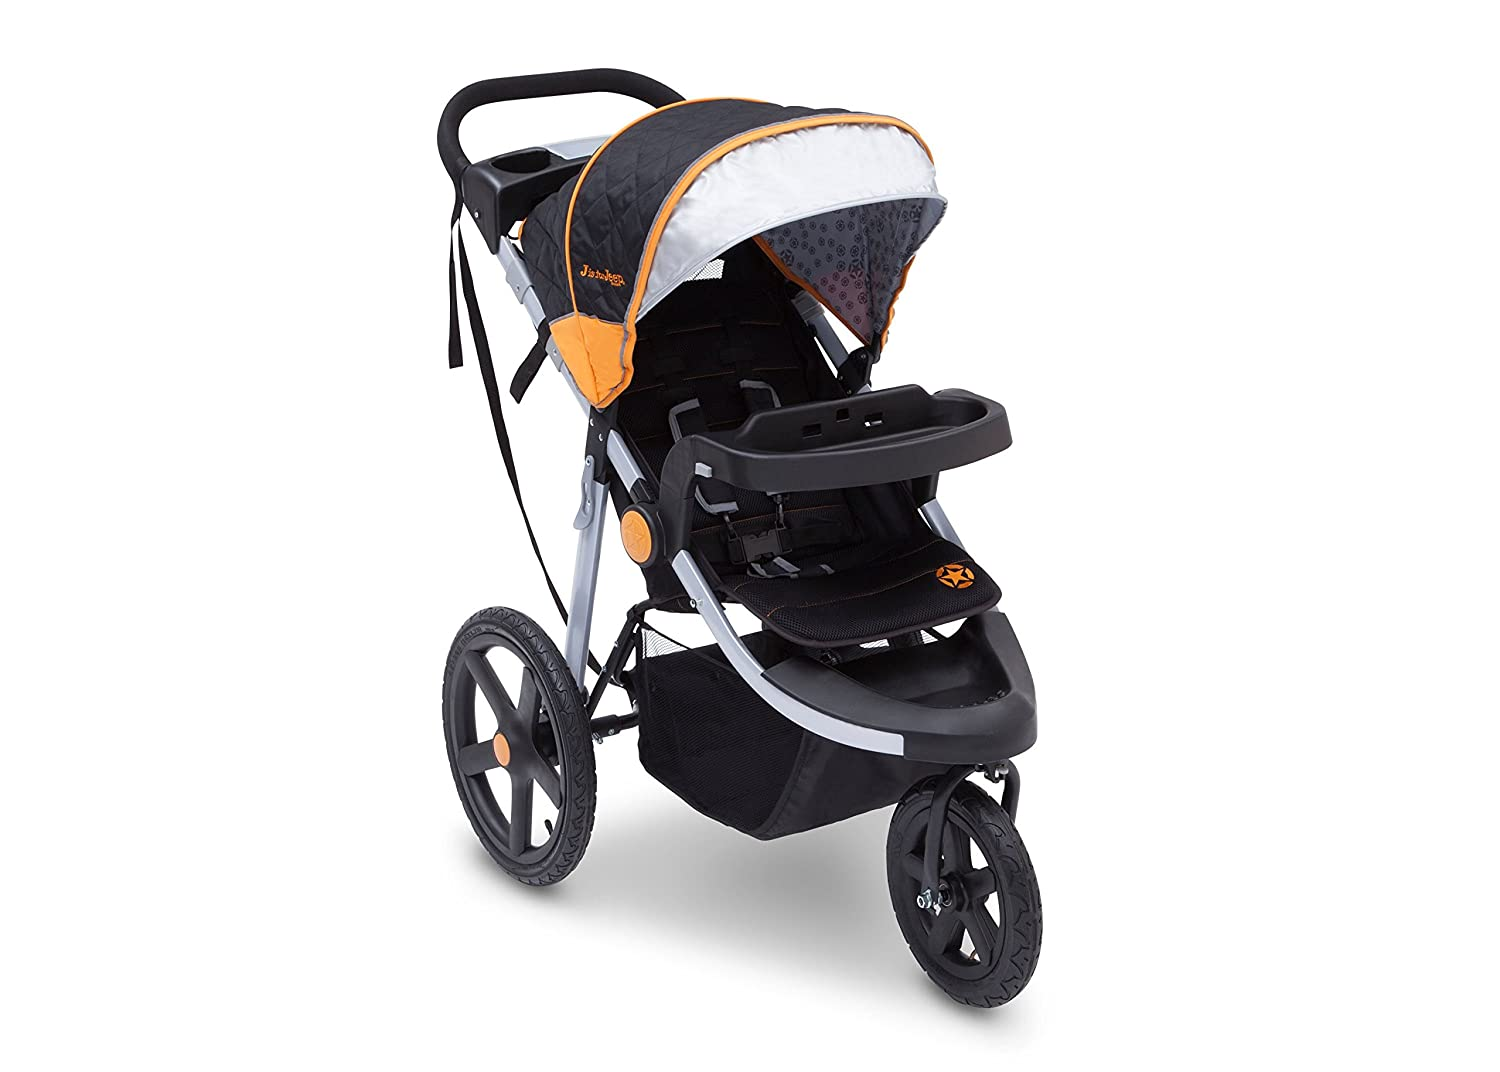 Avalon Jogging Stroller Price Strollers 2017